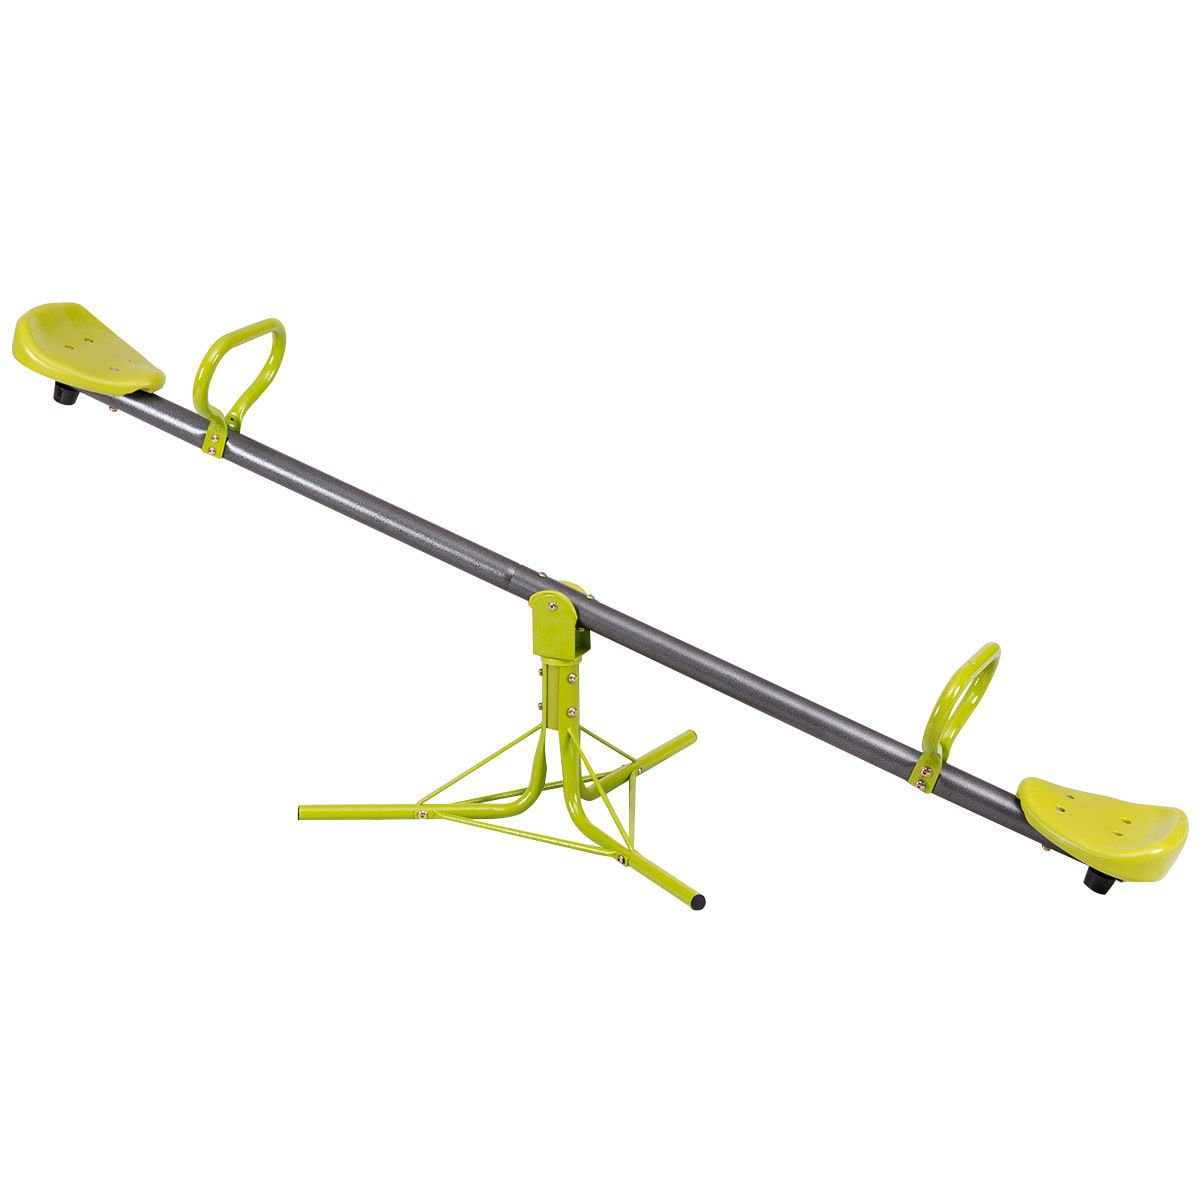 Walomes New Kids Seesaw Teeter Totter Outdoor Play Set 360 Degree Rotation Toy Children